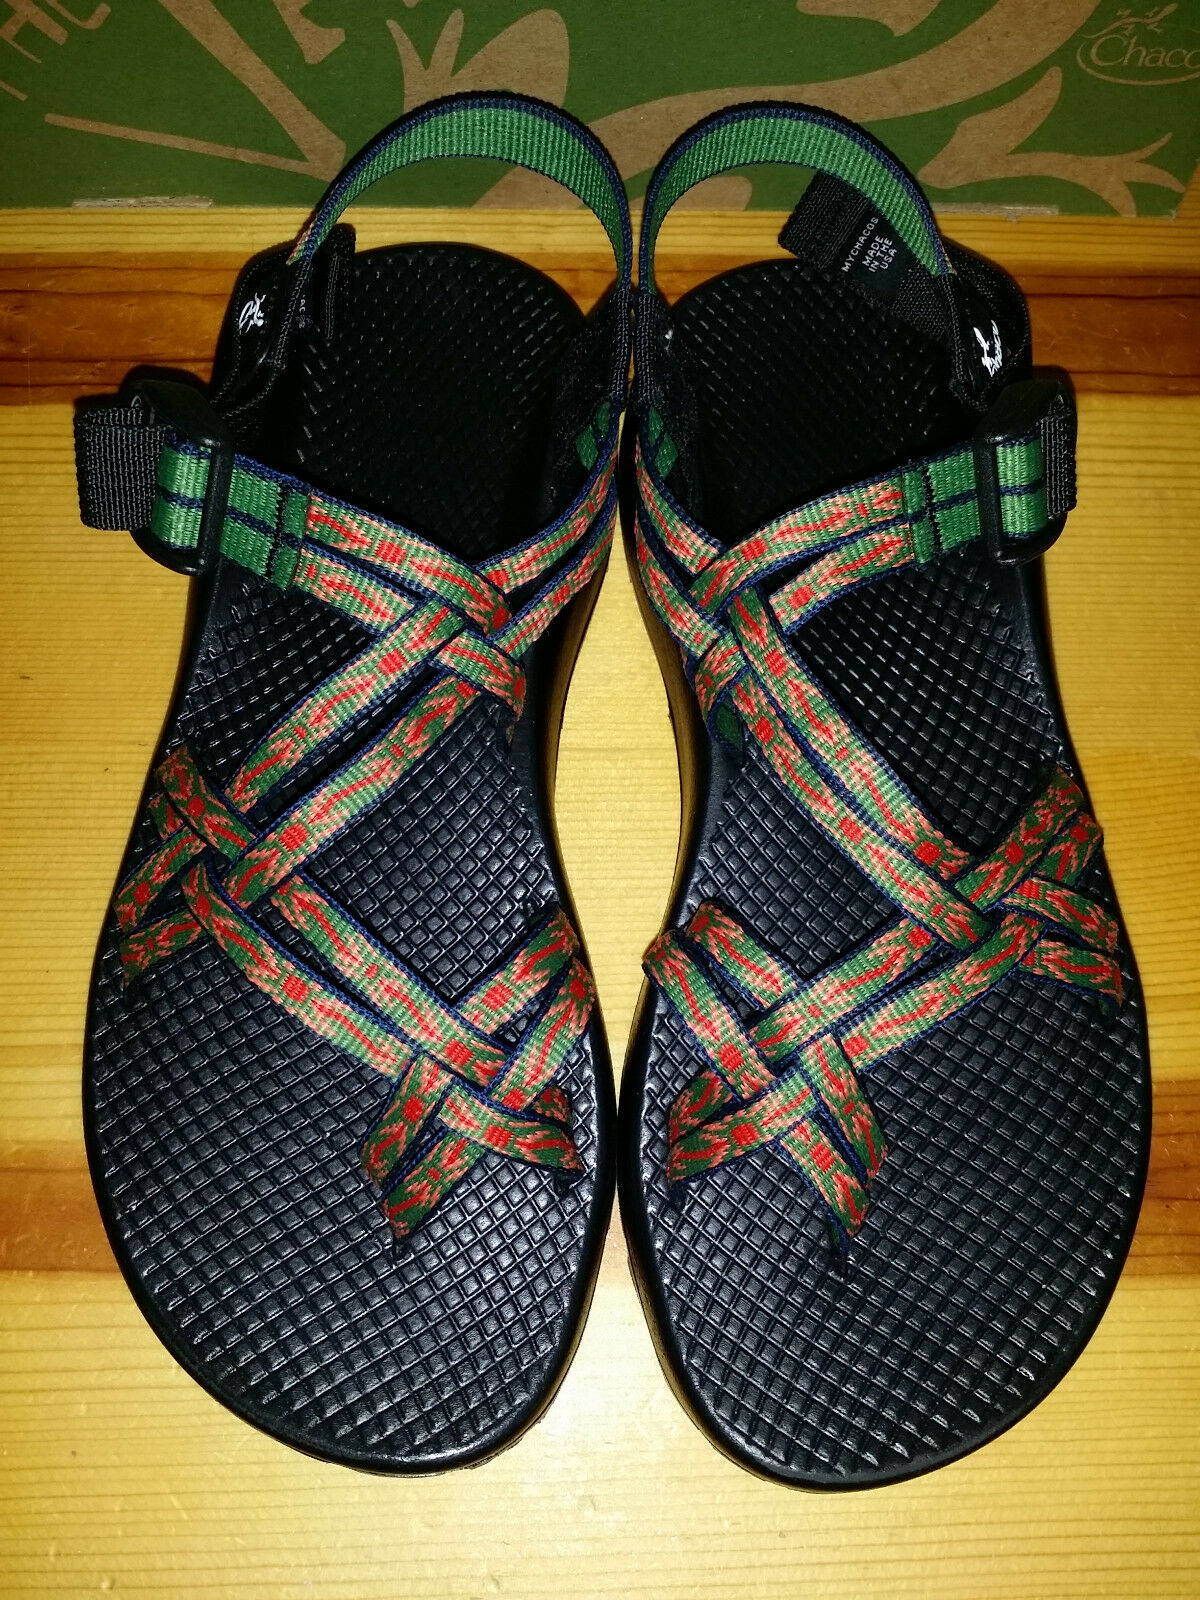 125 Womens 8 8 8 Chaco ZX 2 colorado Sandals MADE IN THE USA Green Red QUICK SHIP 0a168b